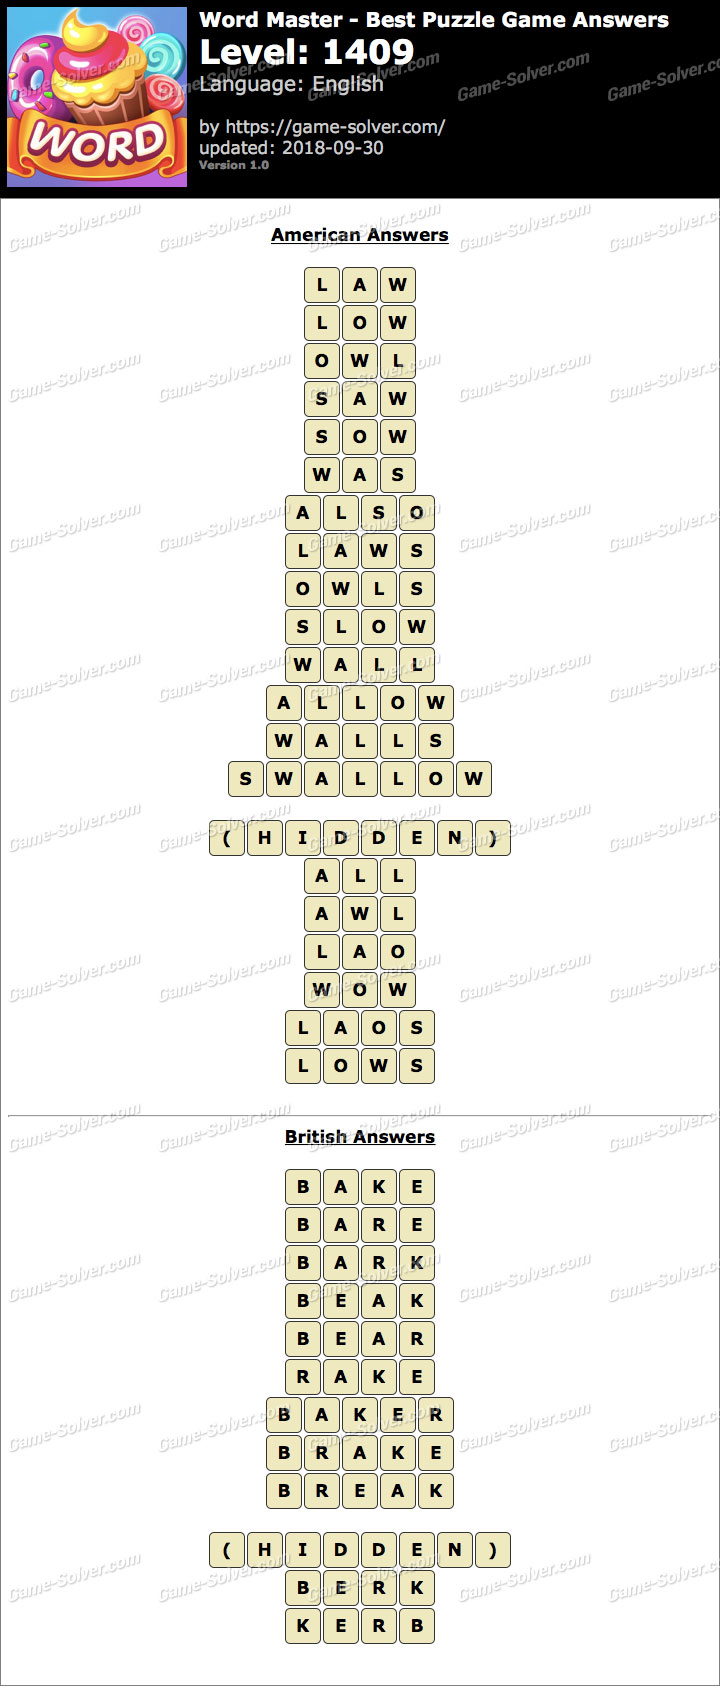 Word Master-Best Puzzle Game Level 1409 Answers